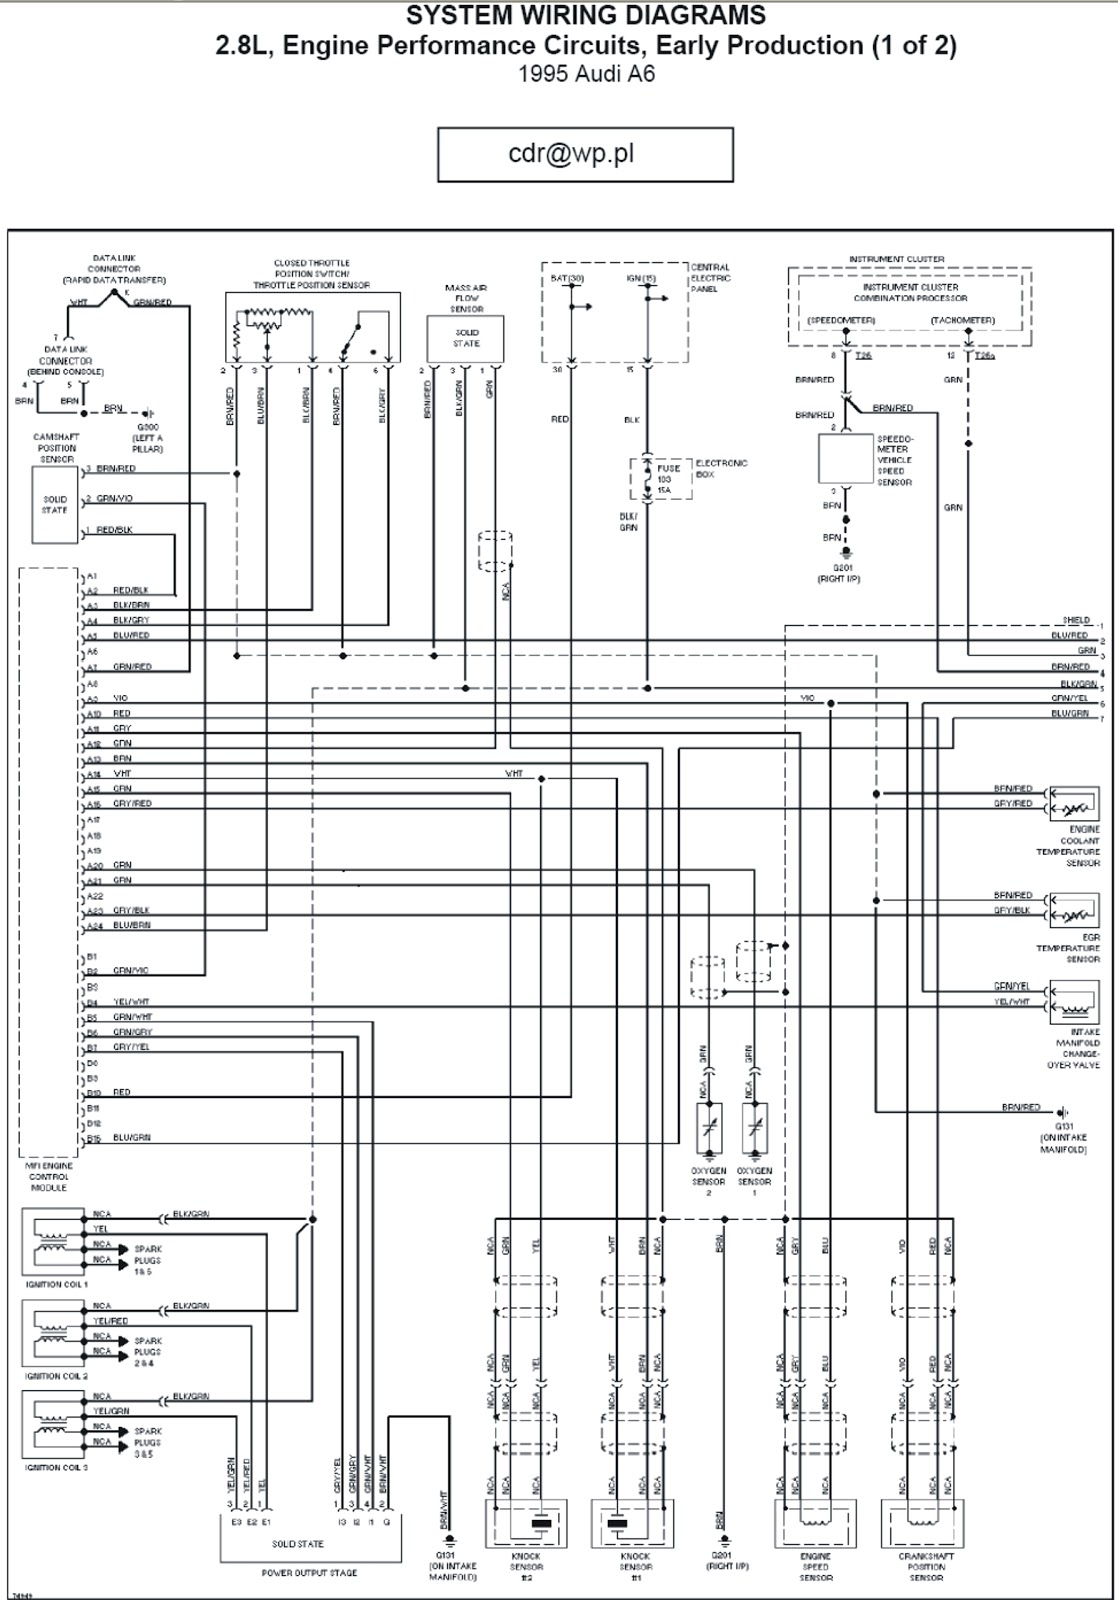 97 Camry Fan Wiring Diagram - Catalogue of Schemas on